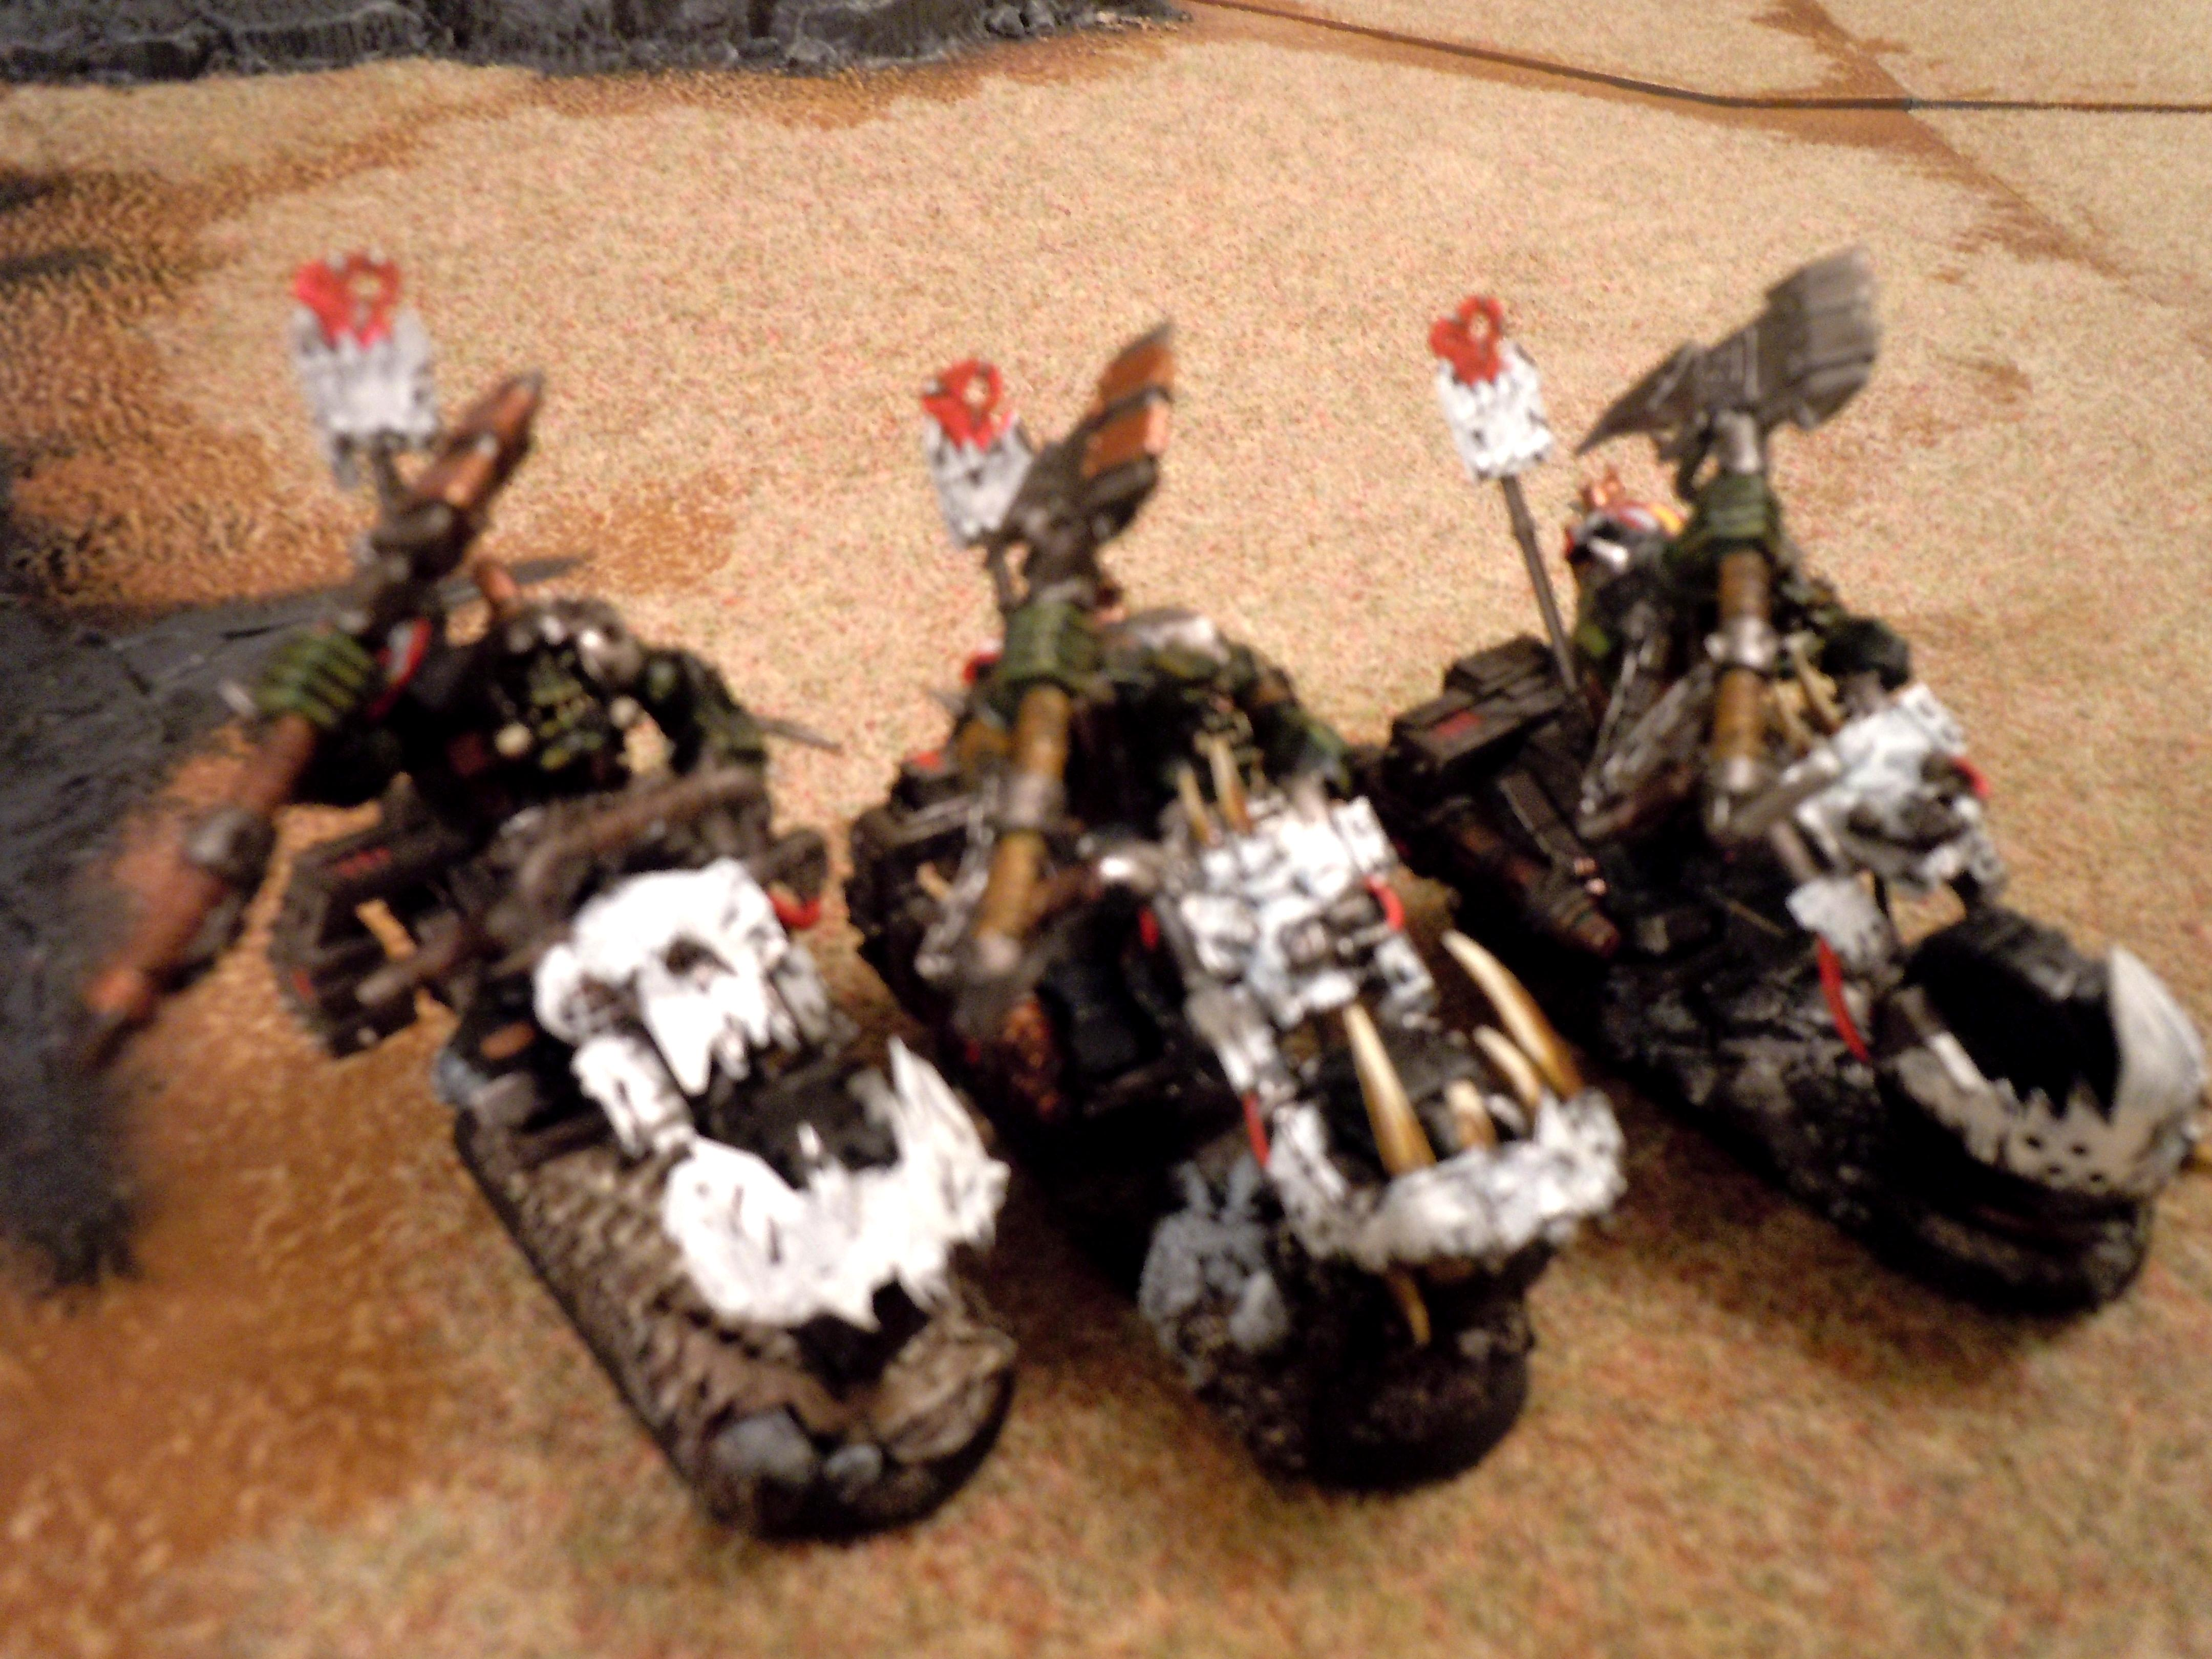 Ork Bikers, Nobz with huge choppas